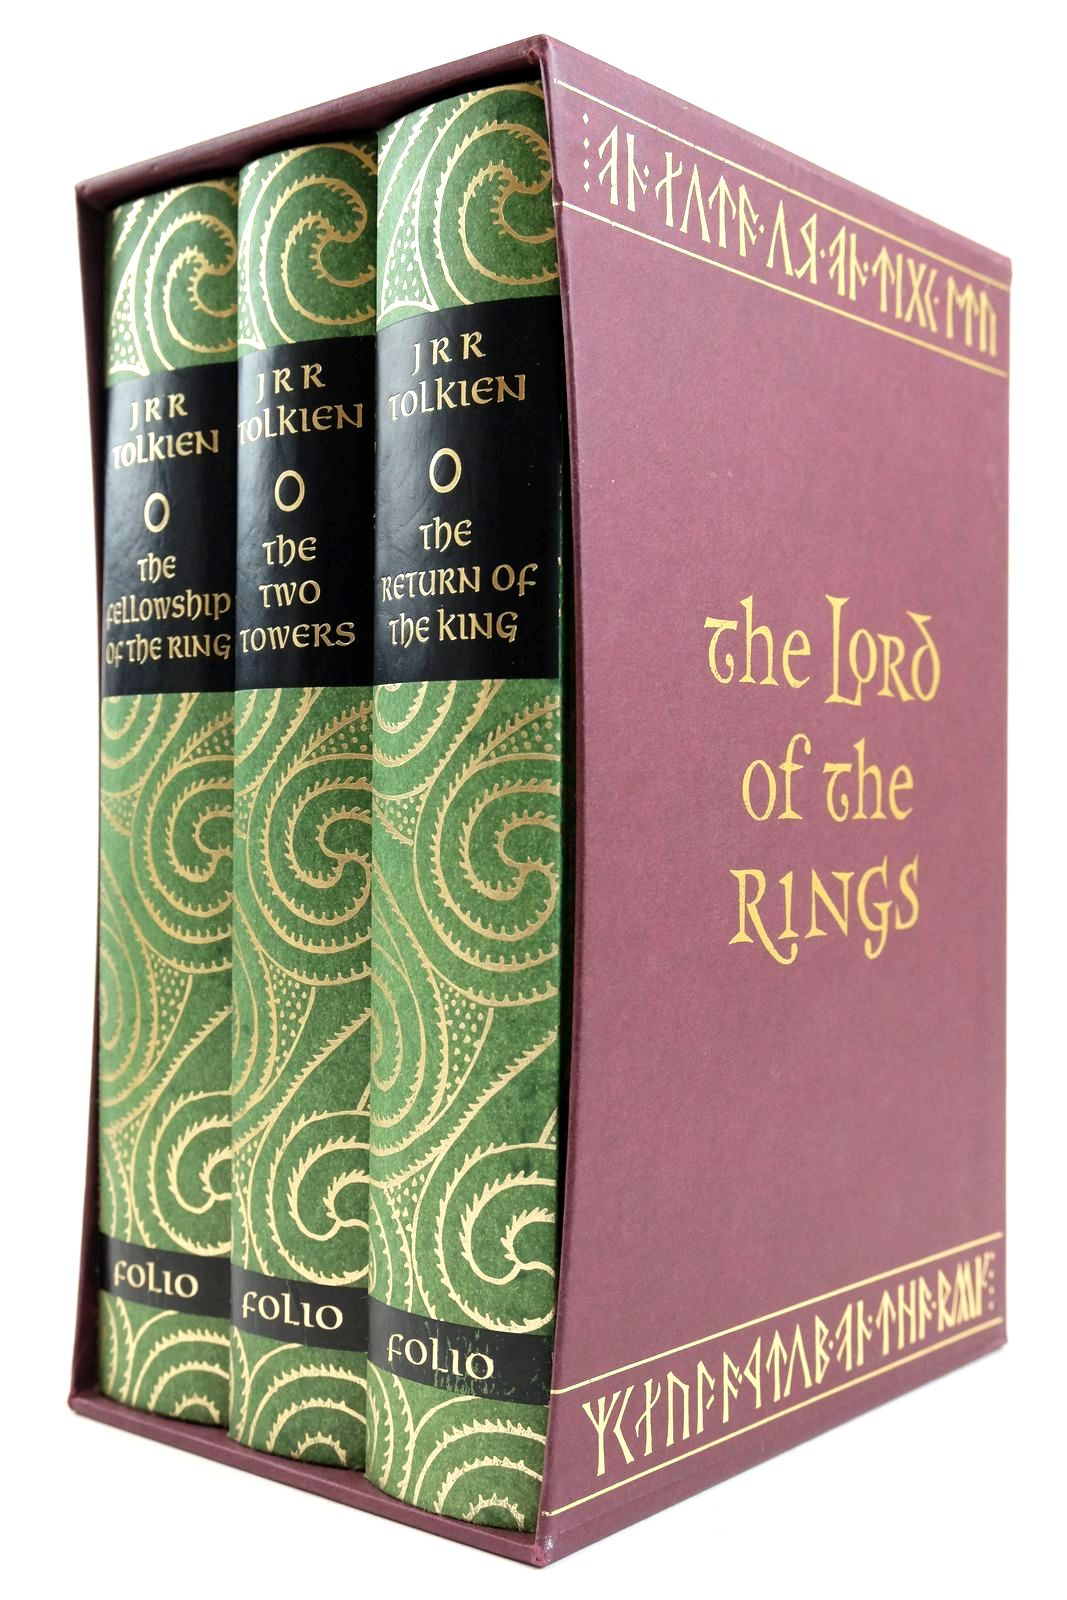 Photo of THE LORD OF THE RINGS written by Tolkien, J.R.R. illustrated by Grathmer, Ingahild Fraser, Eric published by Folio Society (STOCK CODE: 2132833)  for sale by Stella & Rose's Books